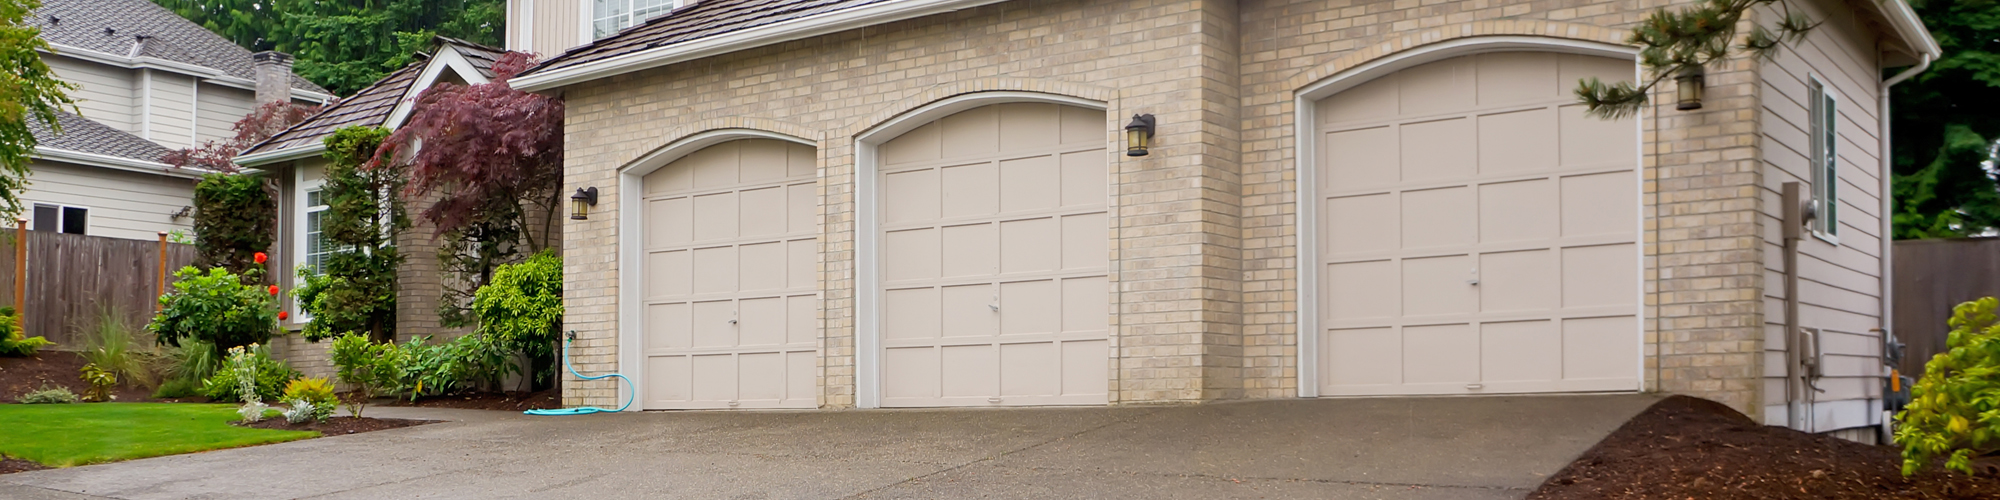 Garage Opener And Remote Repair In Professional Family Owned Business